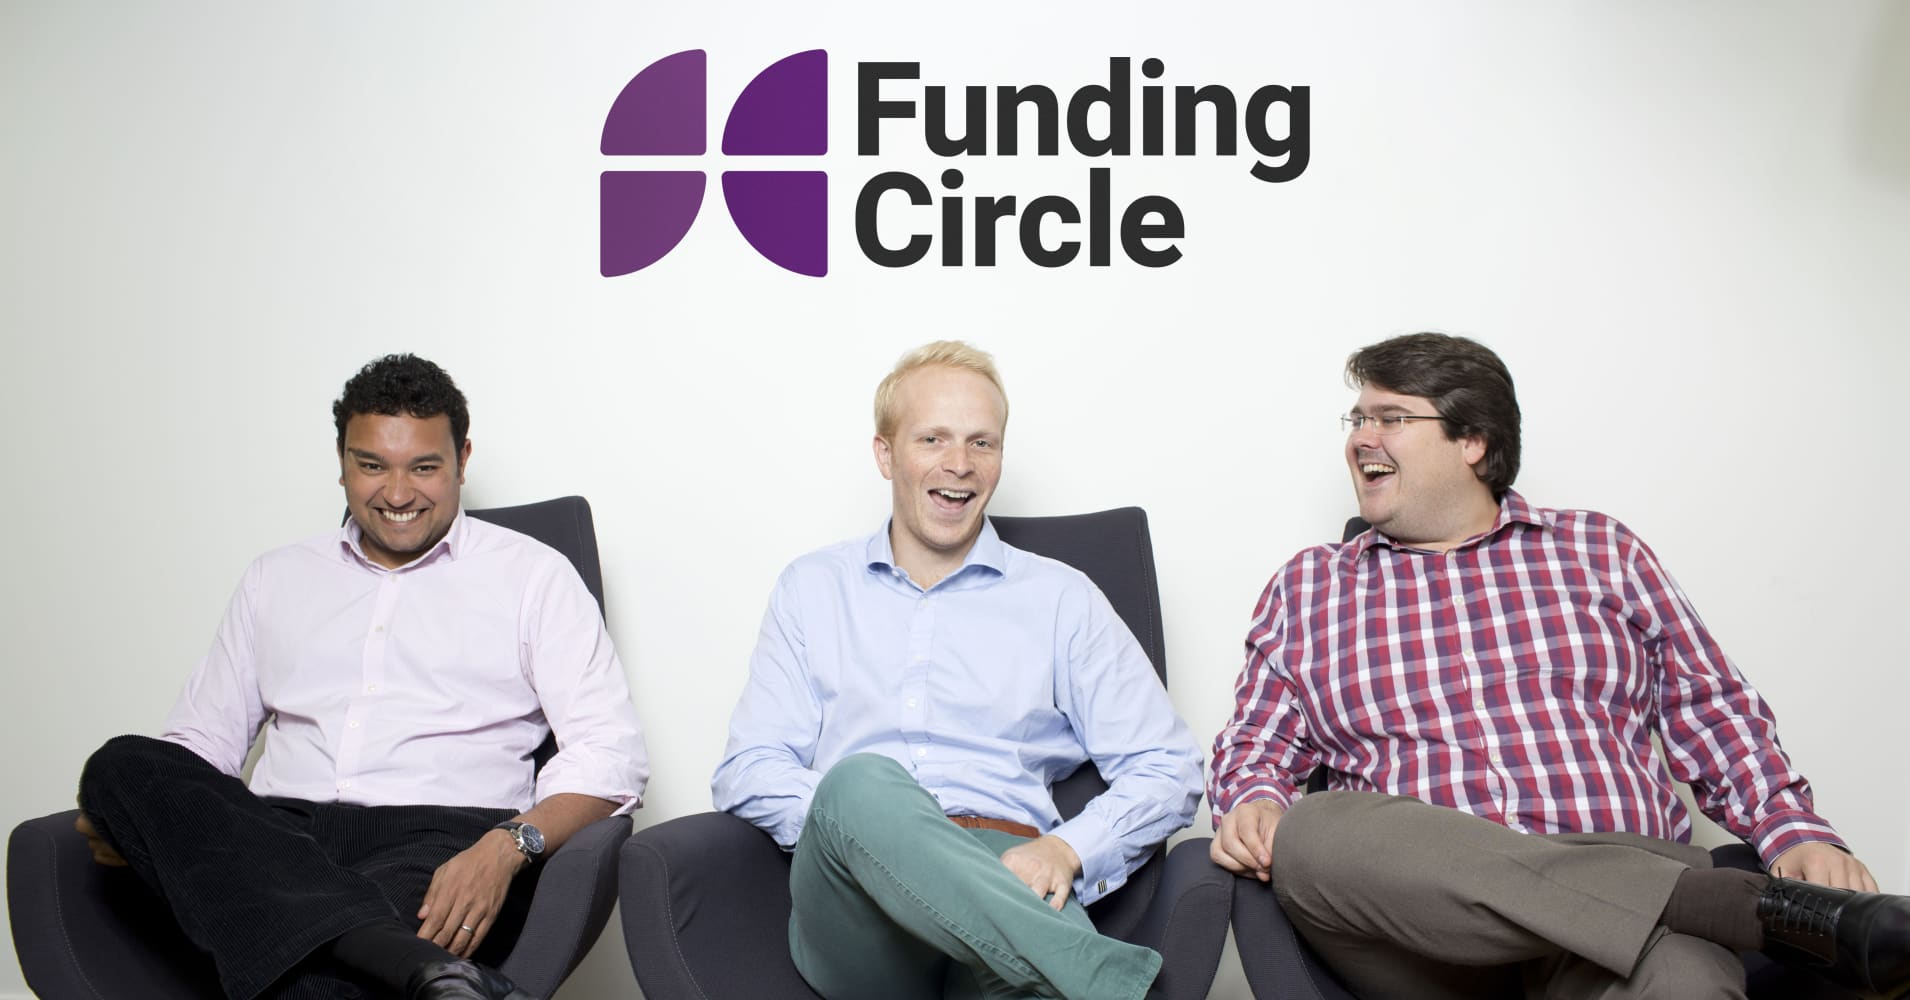 Funding Circle's 1.5 billion London debut sets tone for big listings